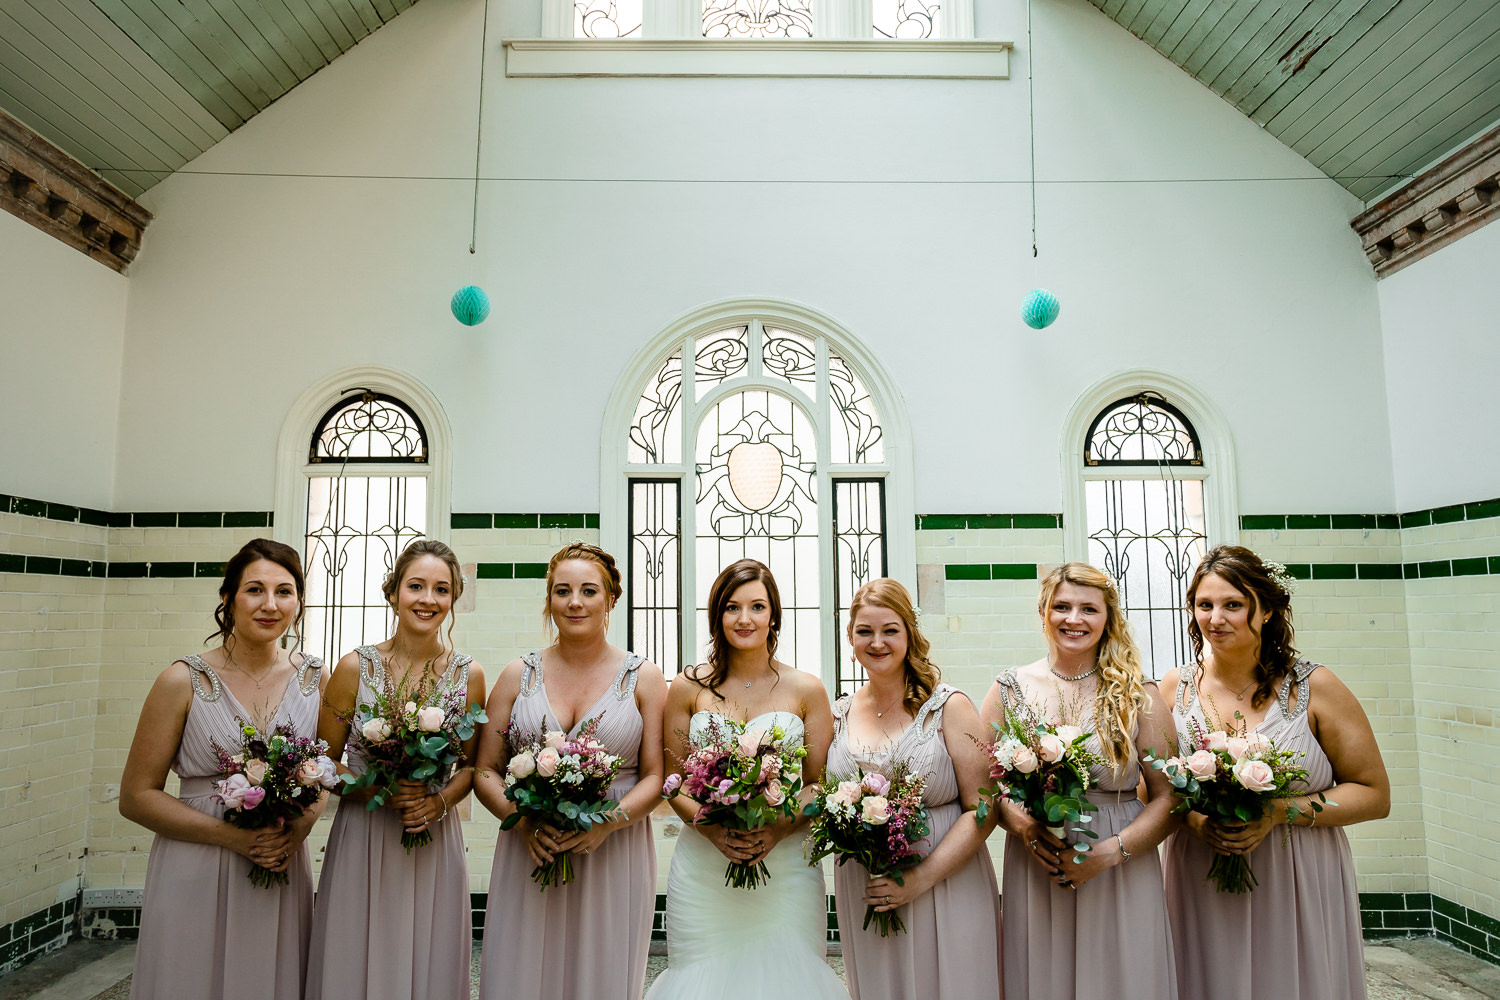 Bridesmaids in the Pineapple Room at a Victoria Baths wedding.